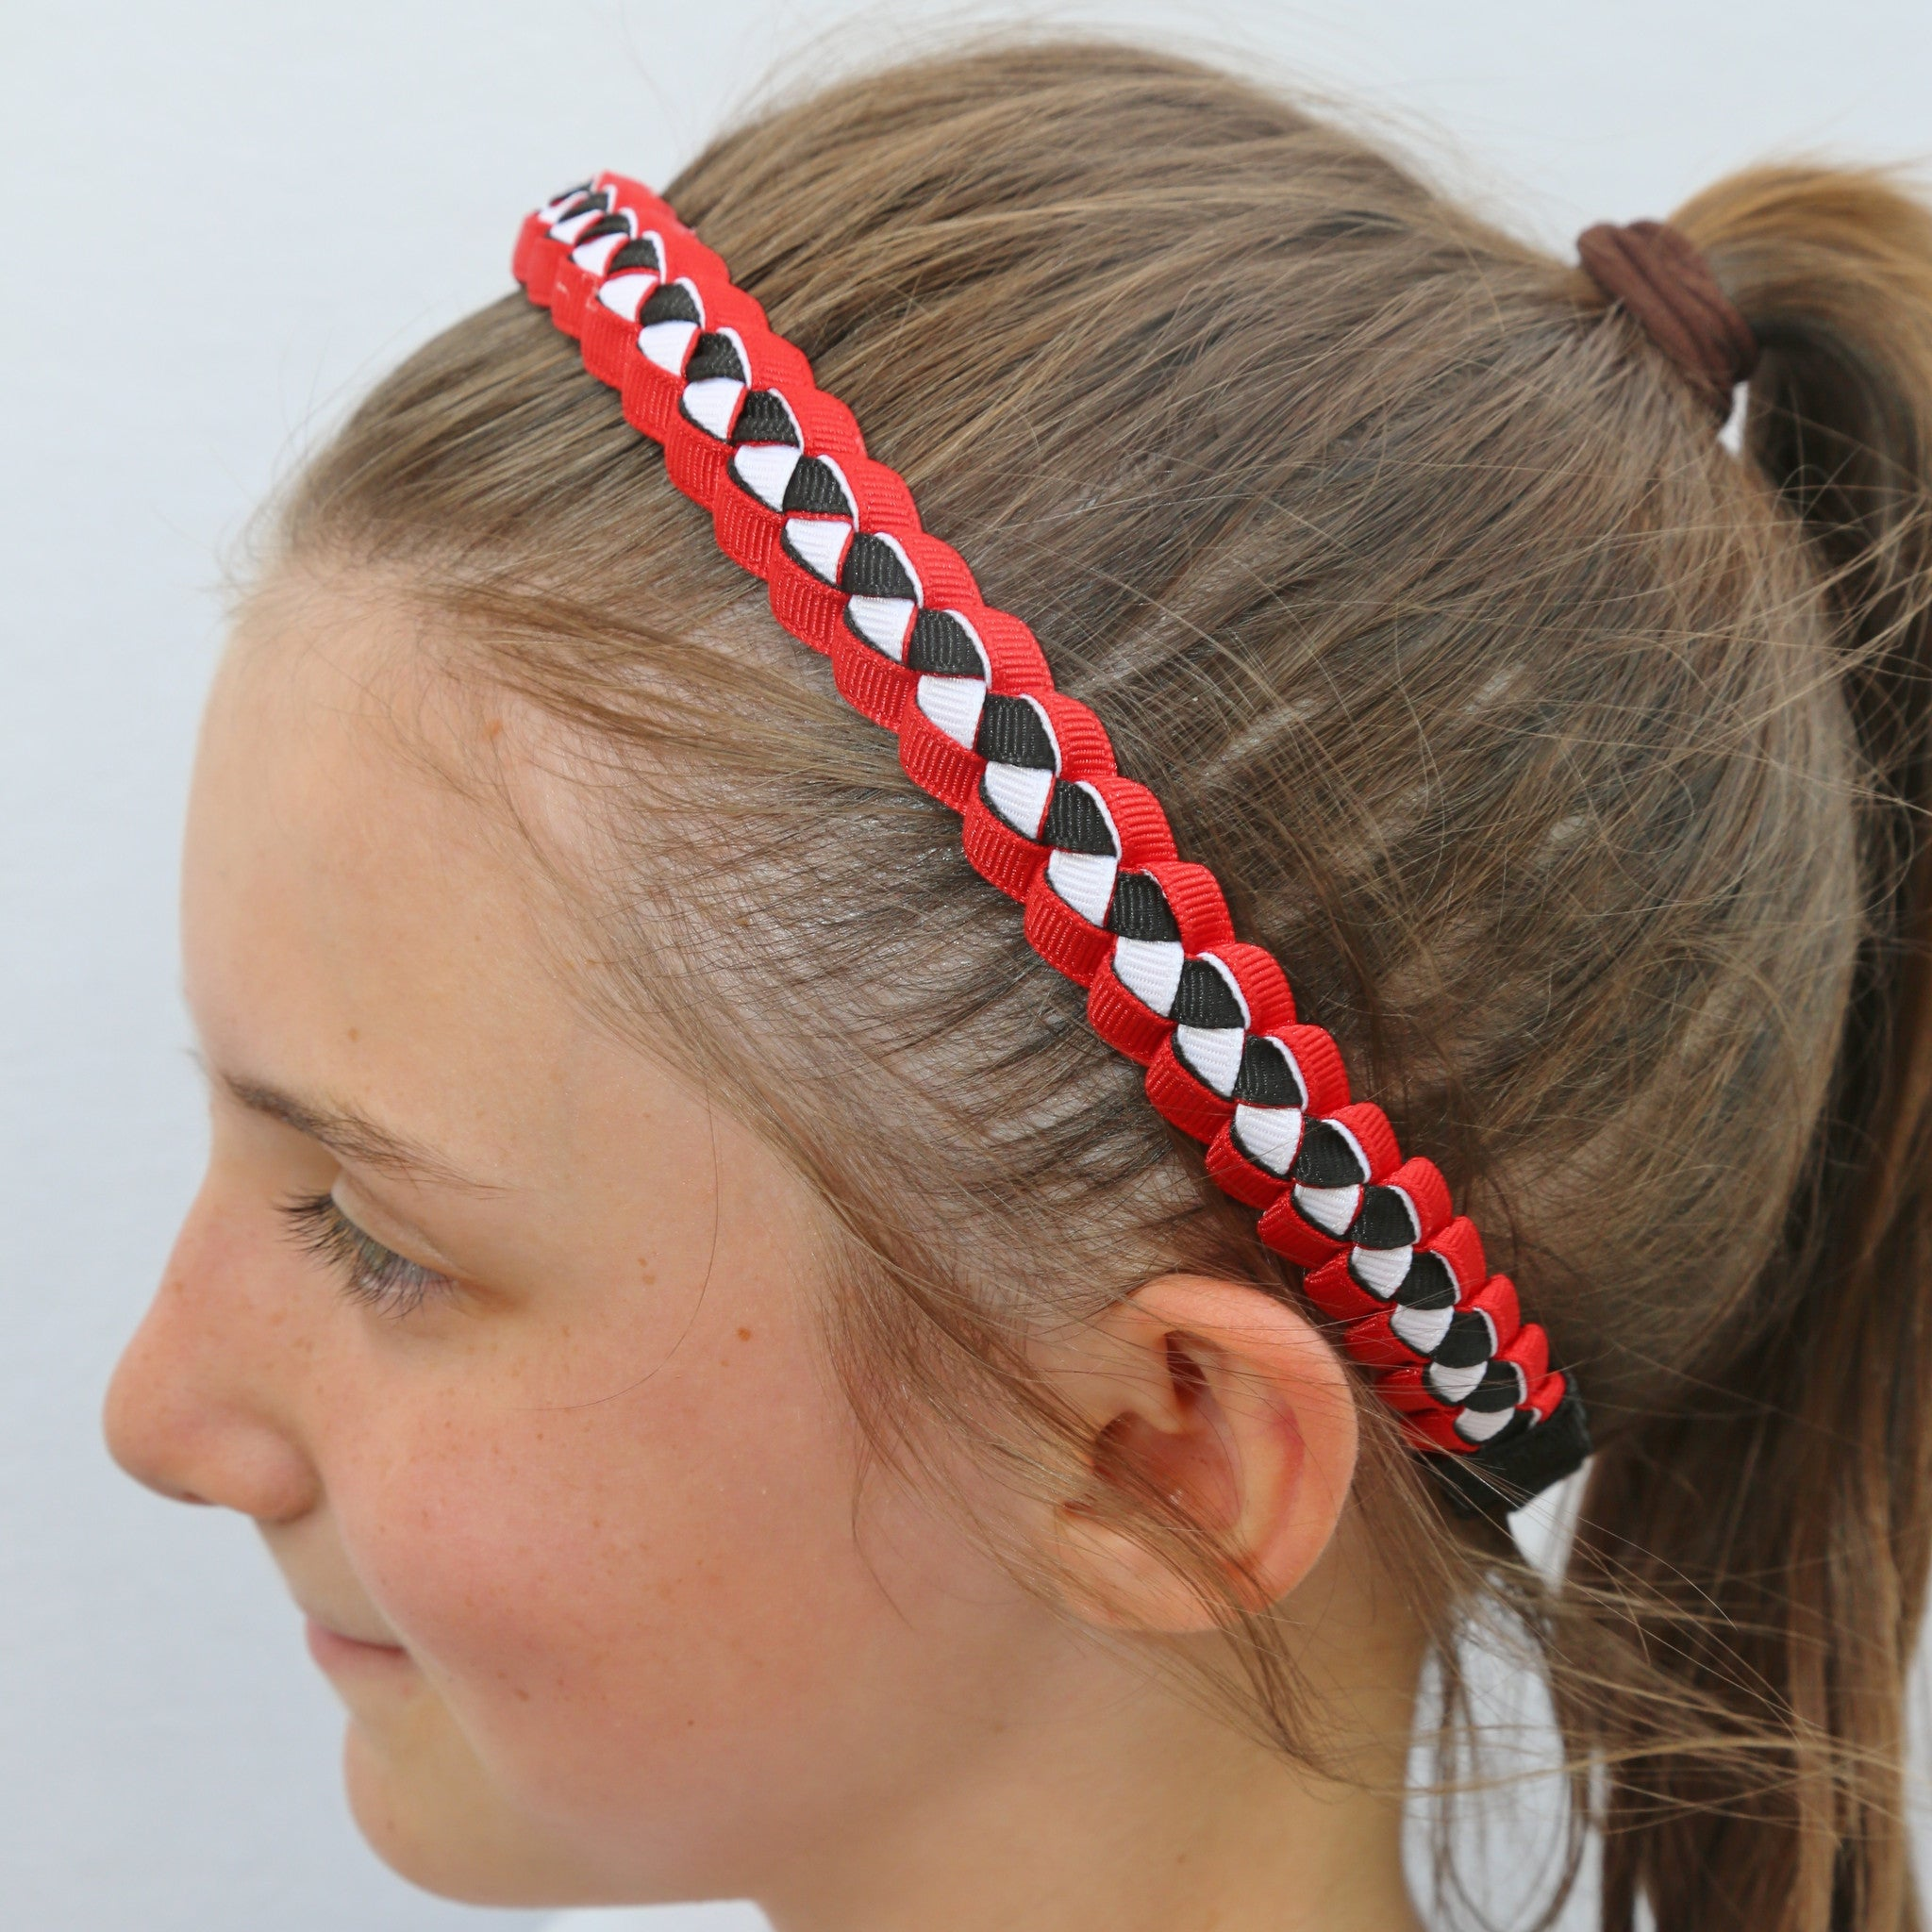 Sillies Headband - Red/Black/White Combinations